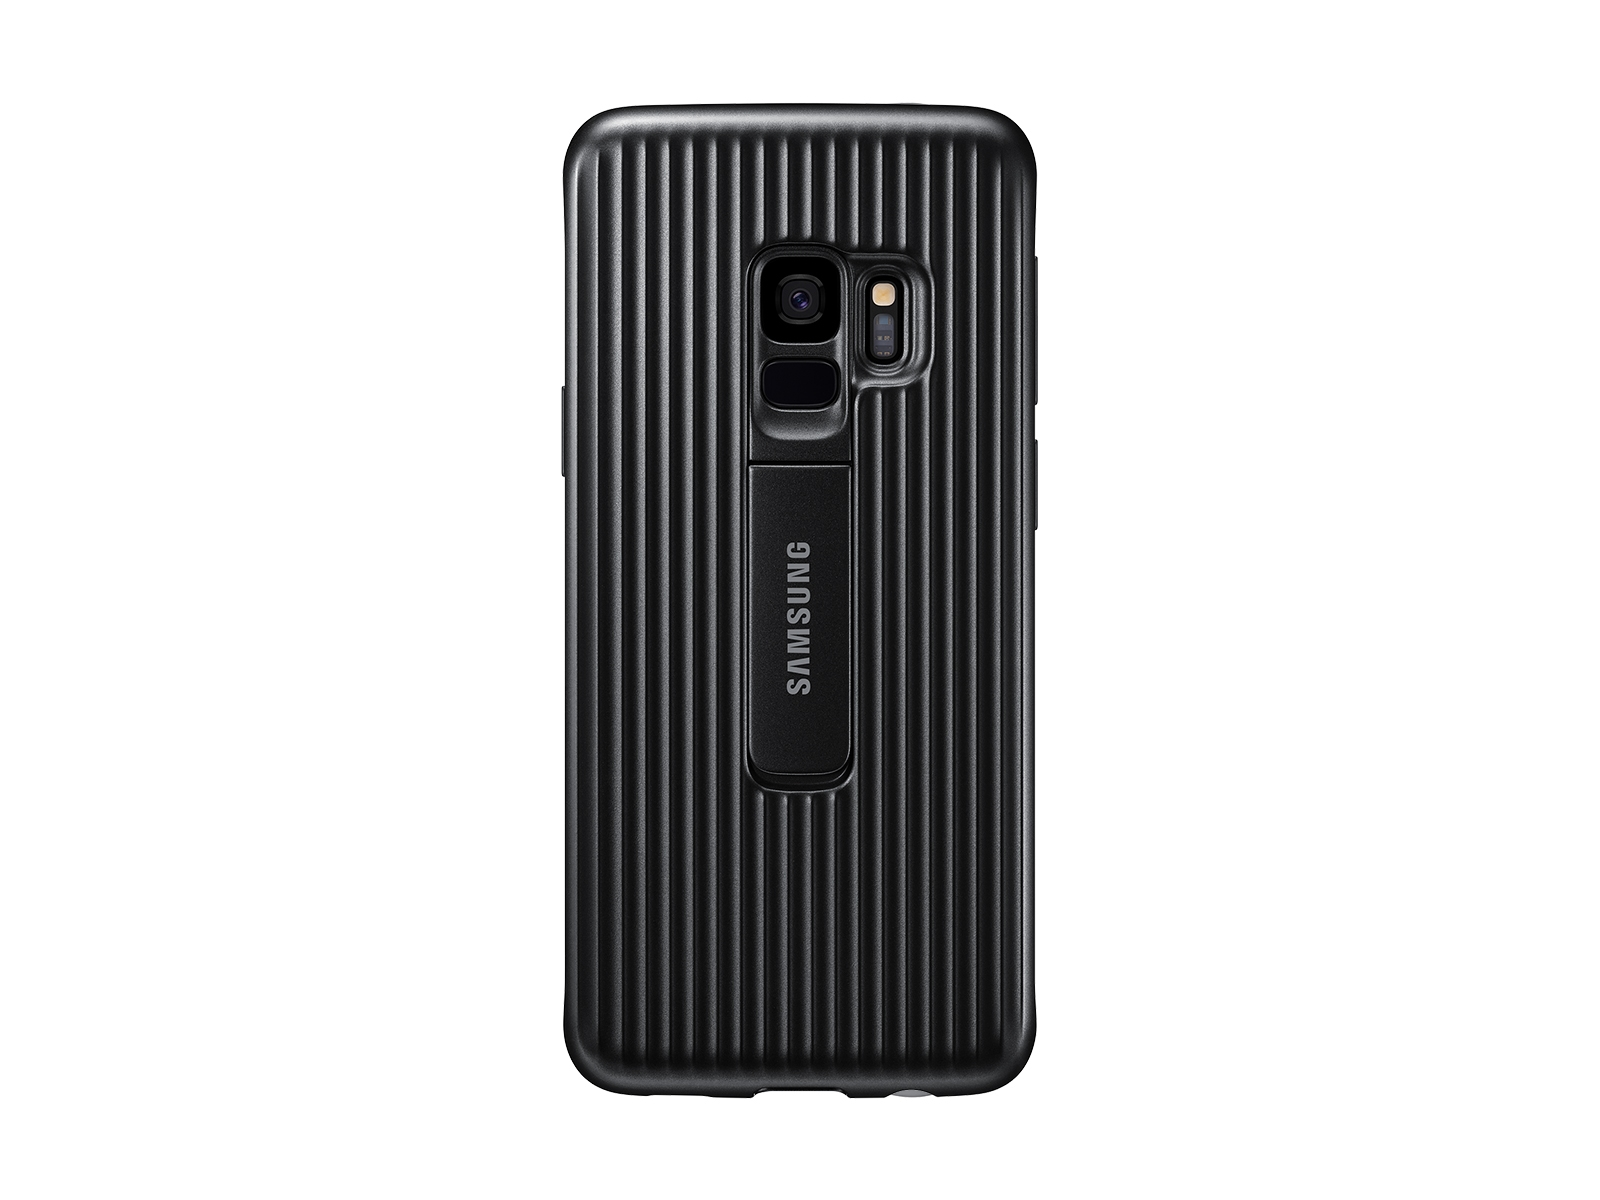 the latest aec07 60258 Galaxy S9 Rugged Protective Cover, Black Mobile Accessories - EF ...